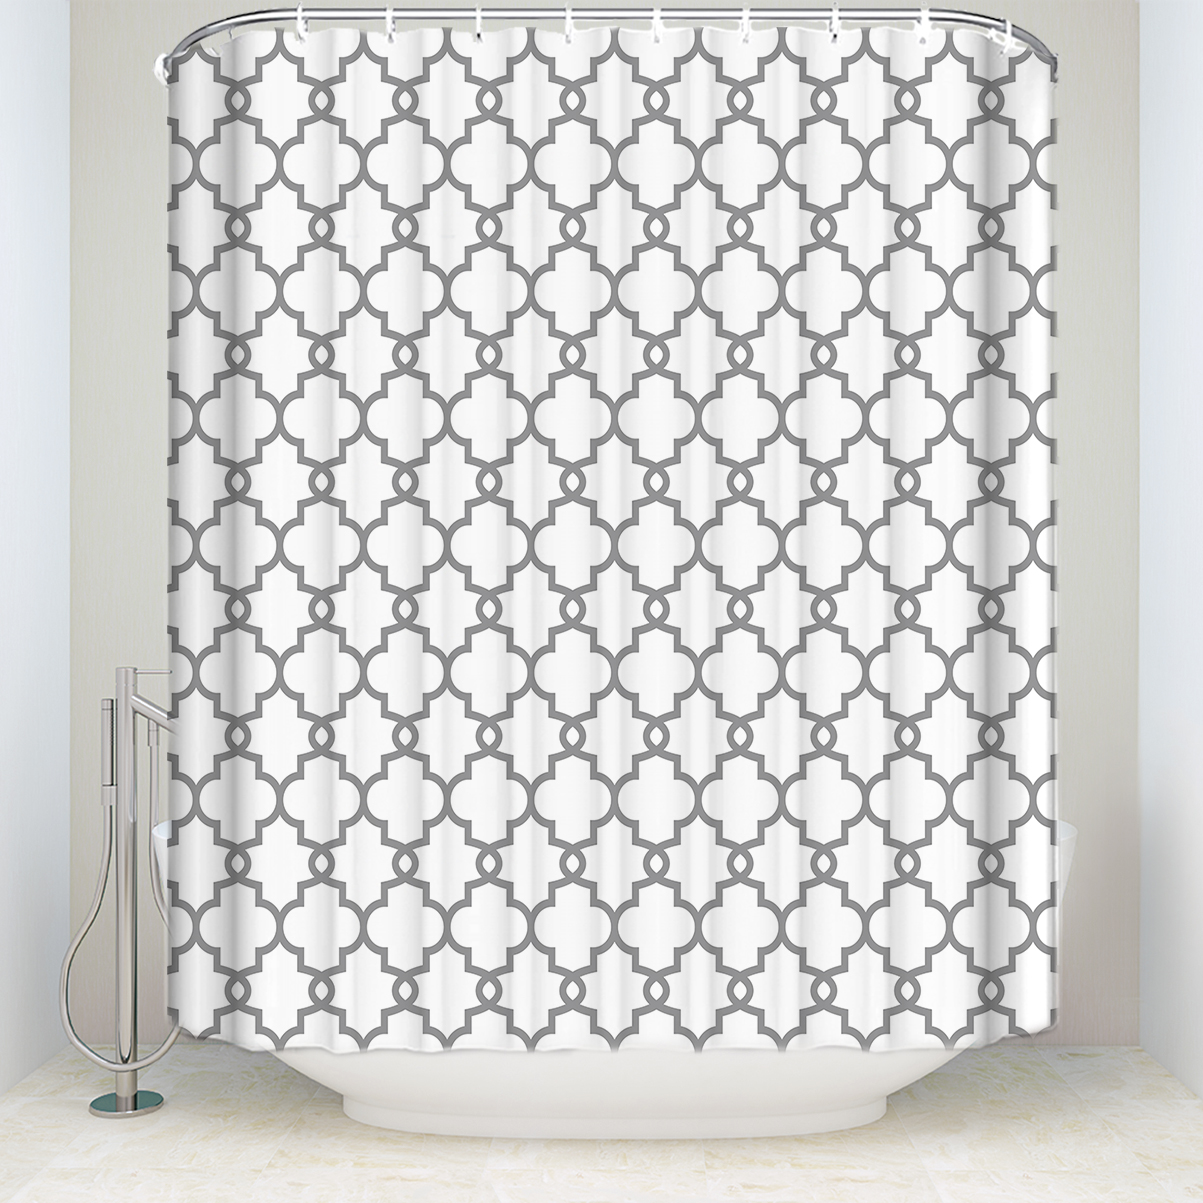 New Waterproof Moroccan Style Geometric Pattern Shower Curtain Polyester Fabric Gray White Bathroom Curtains For Home Decor Shower Curtains Aliexpress